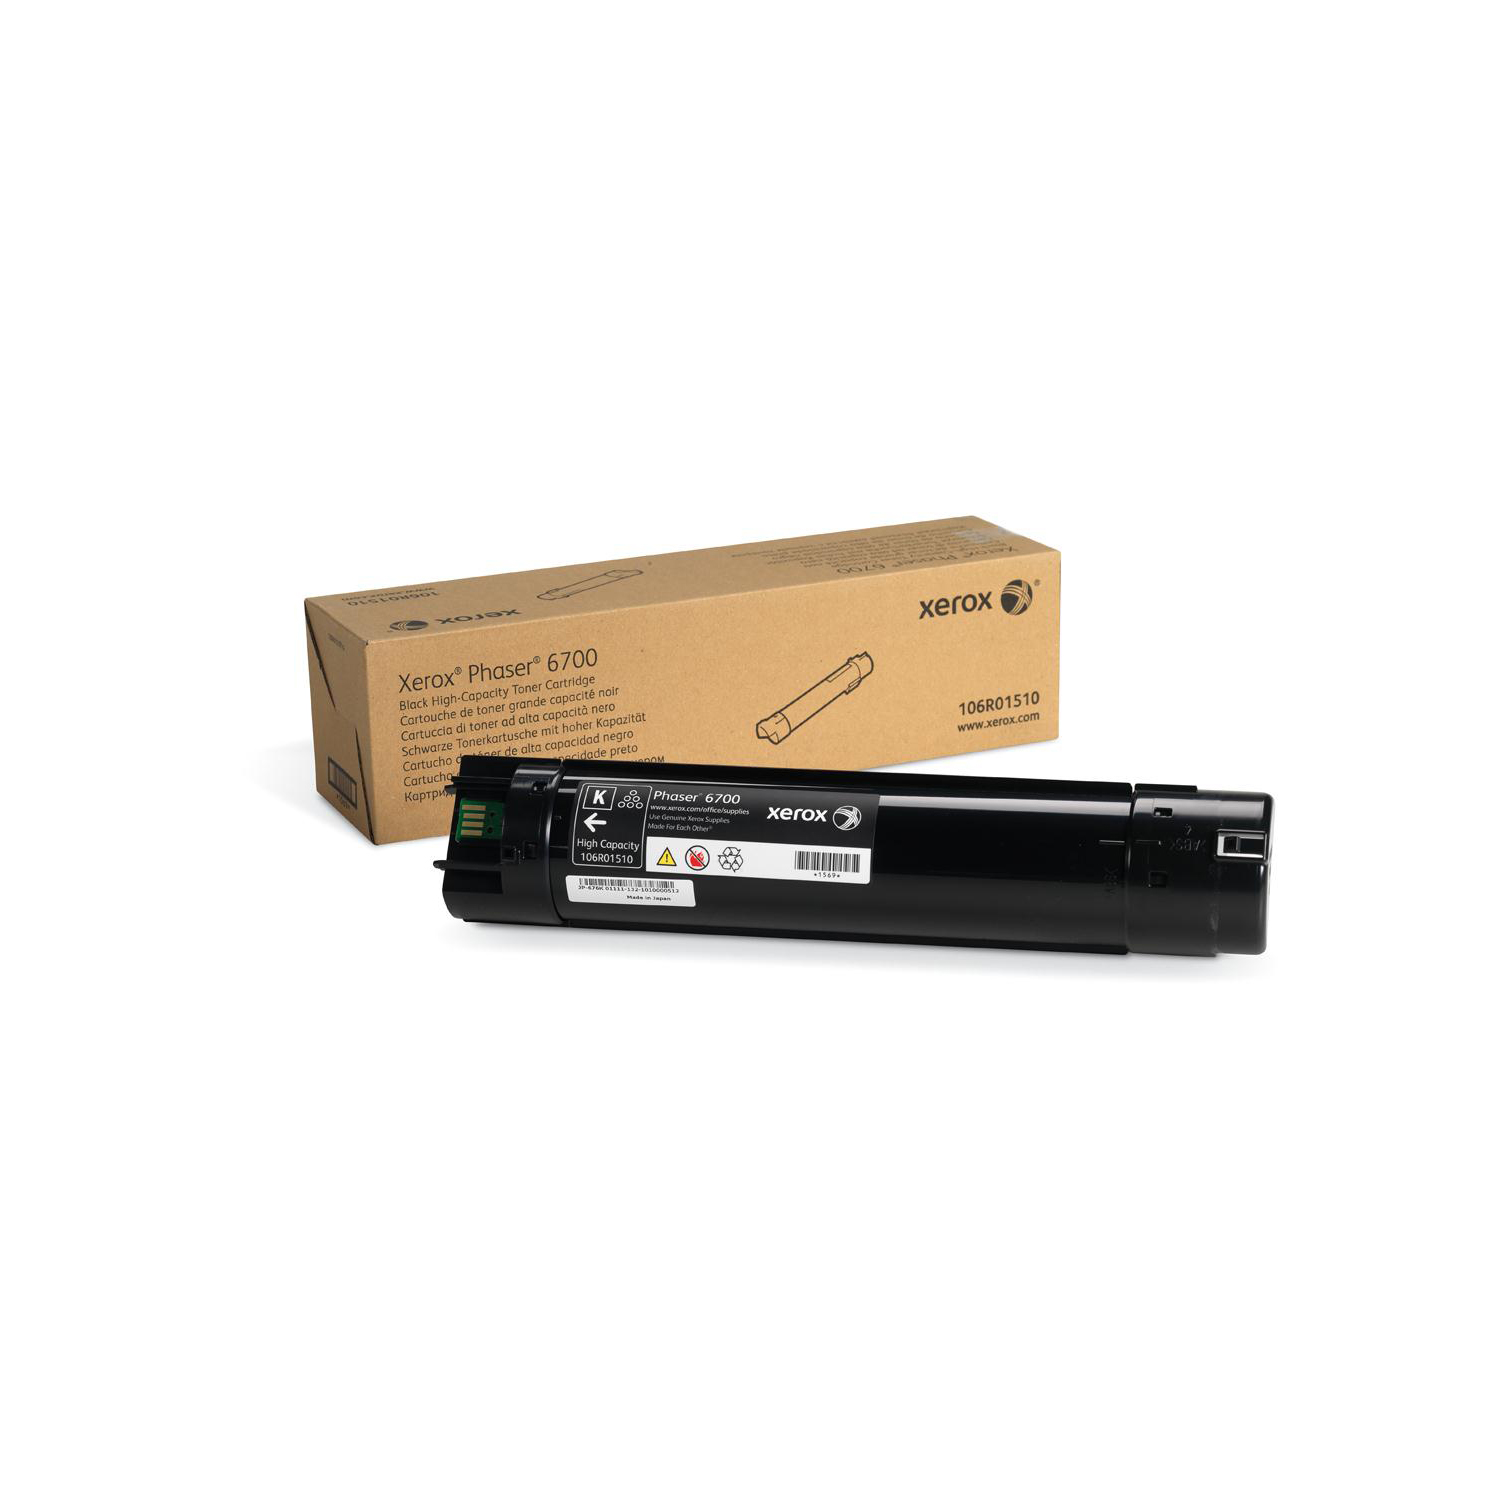 Xerox PH6700 Toner Cartridge High Yield 18000pp Black Ref 106R01510